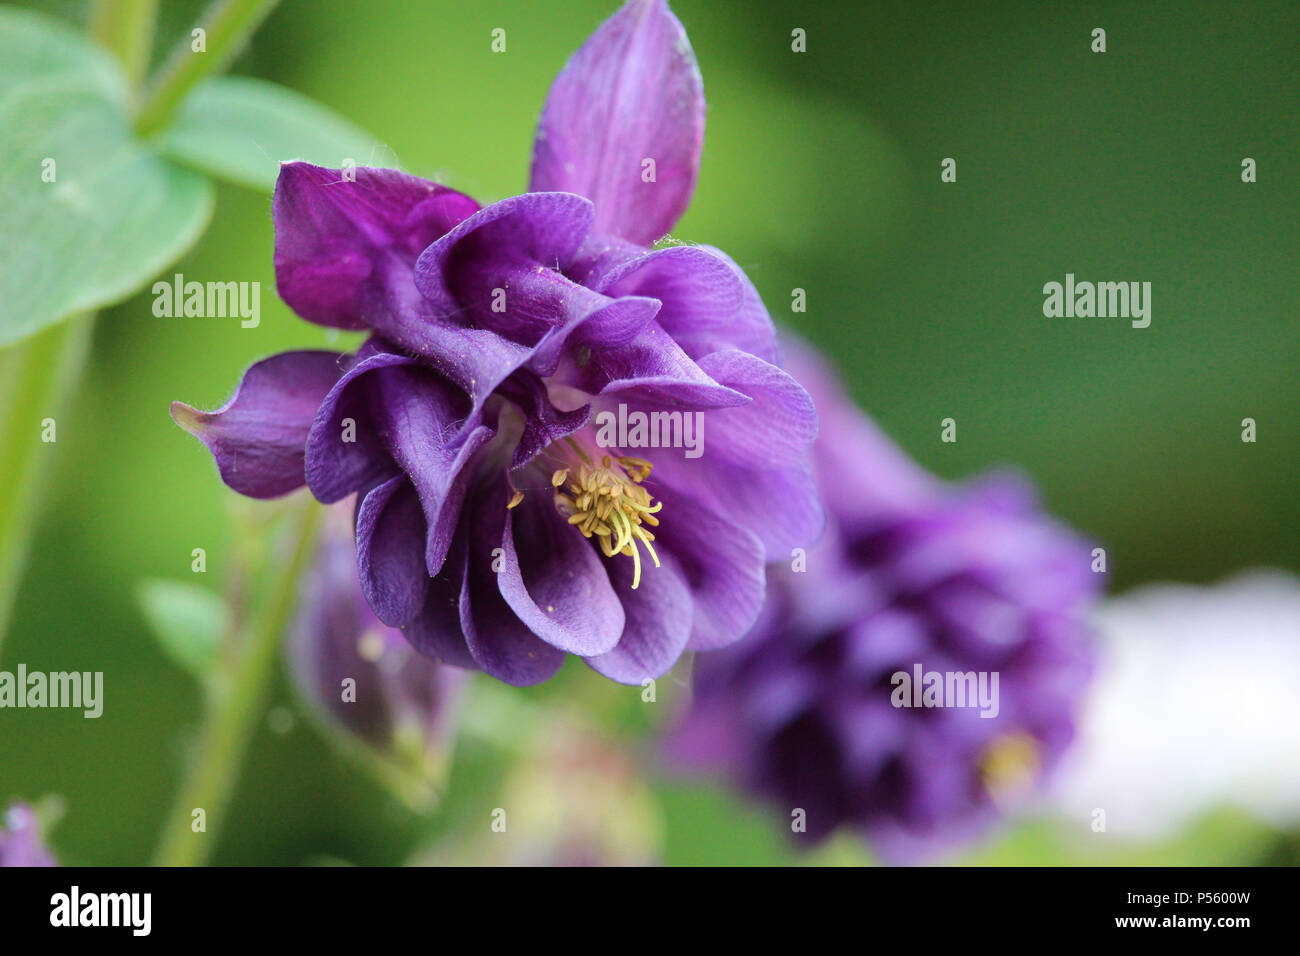 The Beautiful Purple Flowers Of An Aquilegia Also Known As